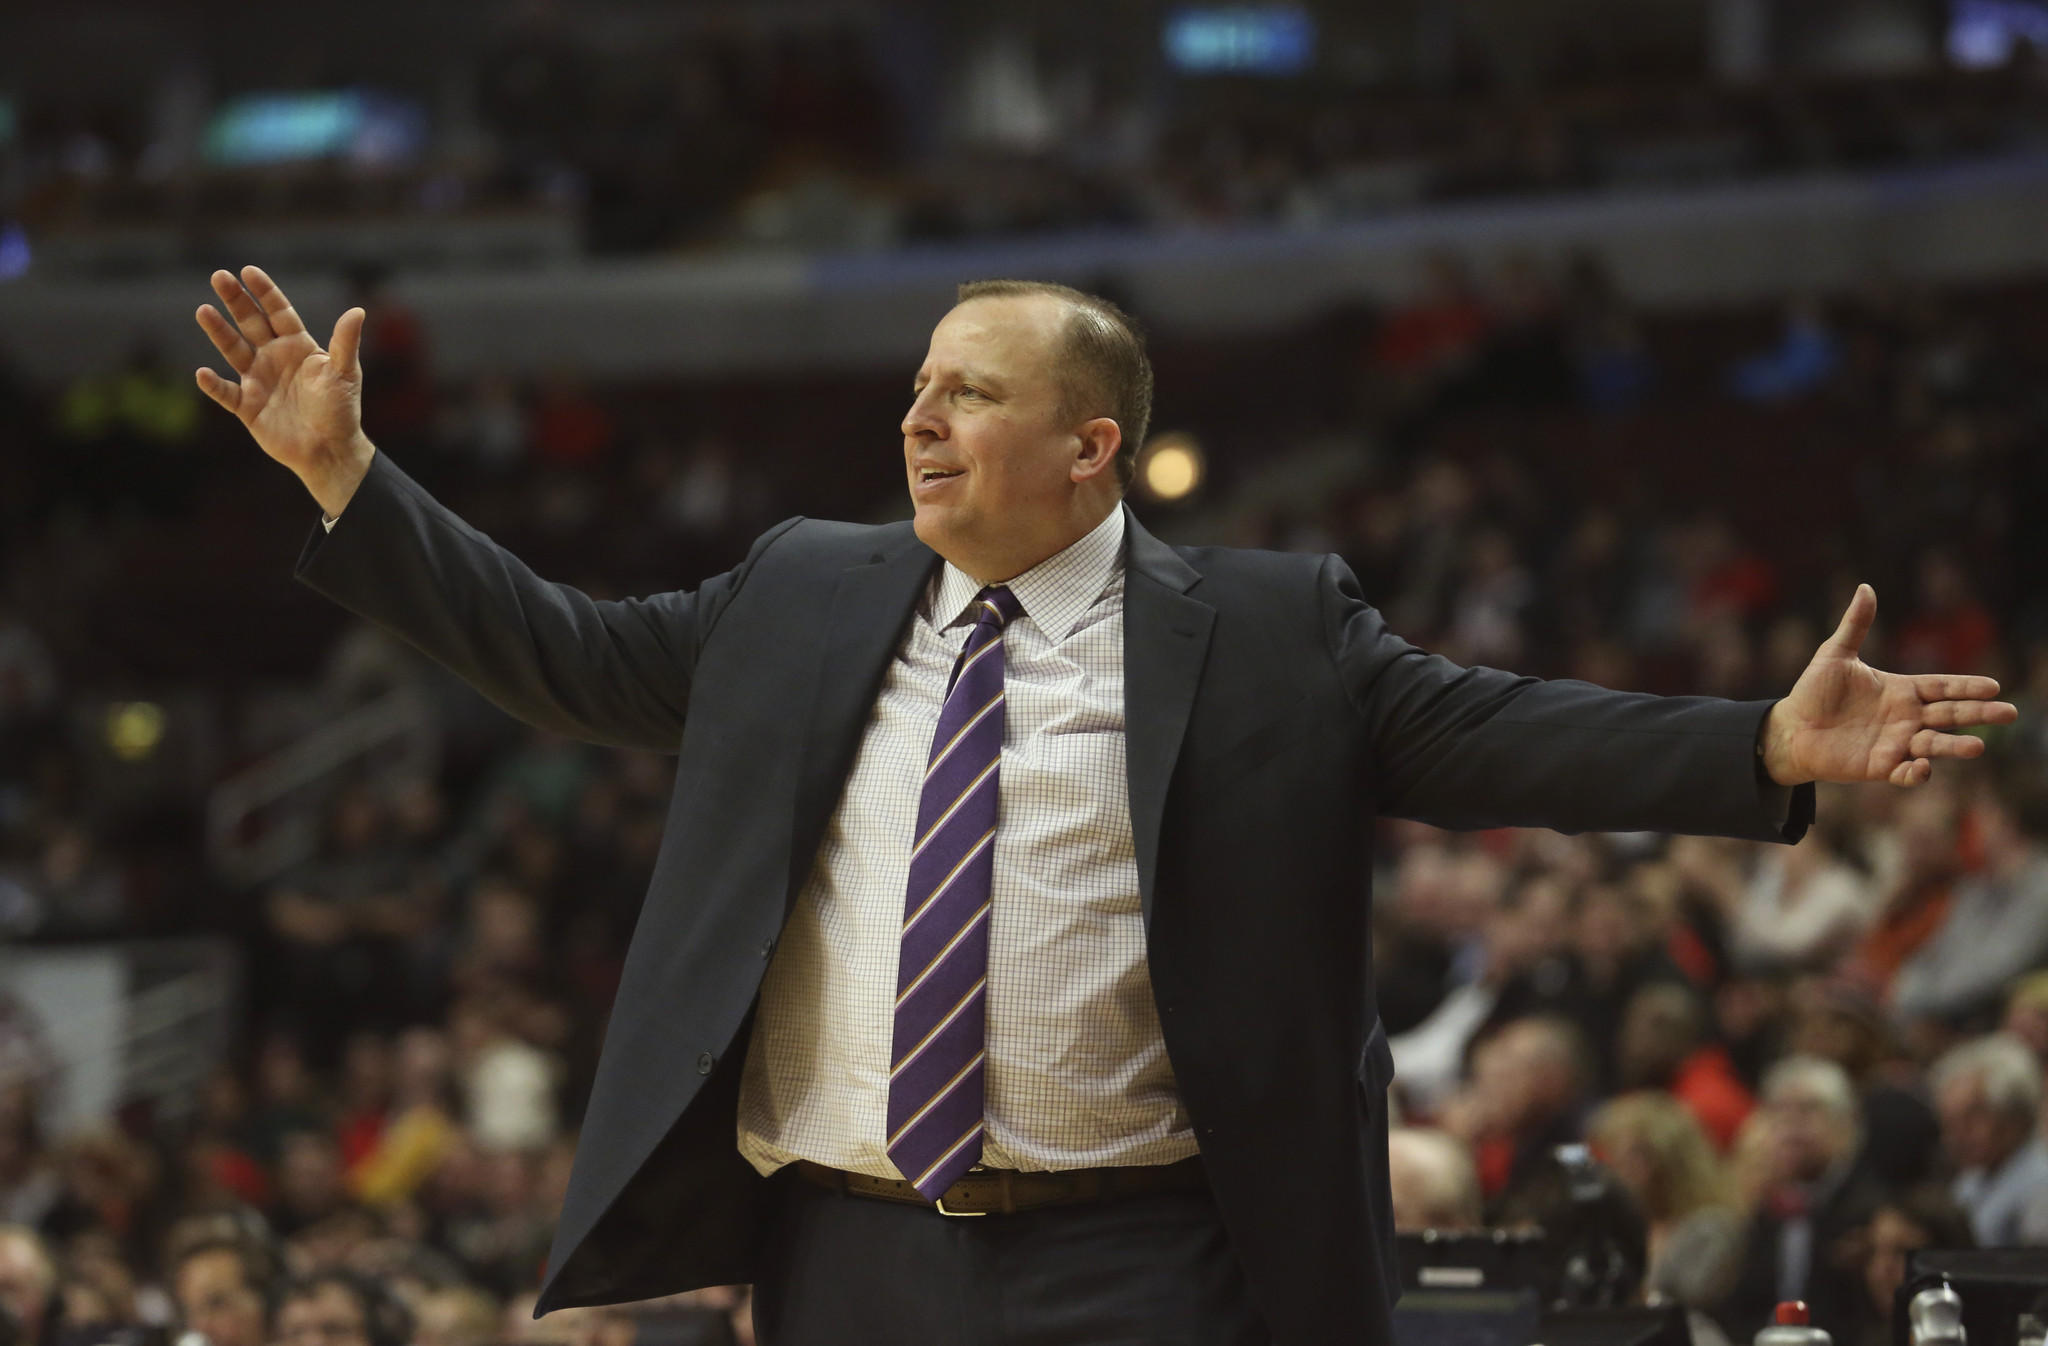 Chicago Bulls coach Tom Thibodeau, during the second half of his team's game against the Phoenix Suns, at the United Center.